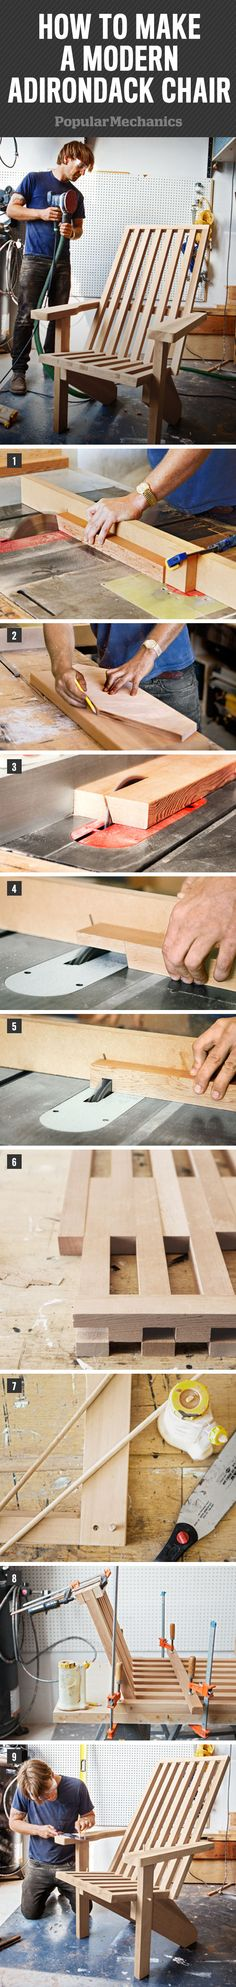 How to make a modern Adirondack chair - Pinning this for next summer!